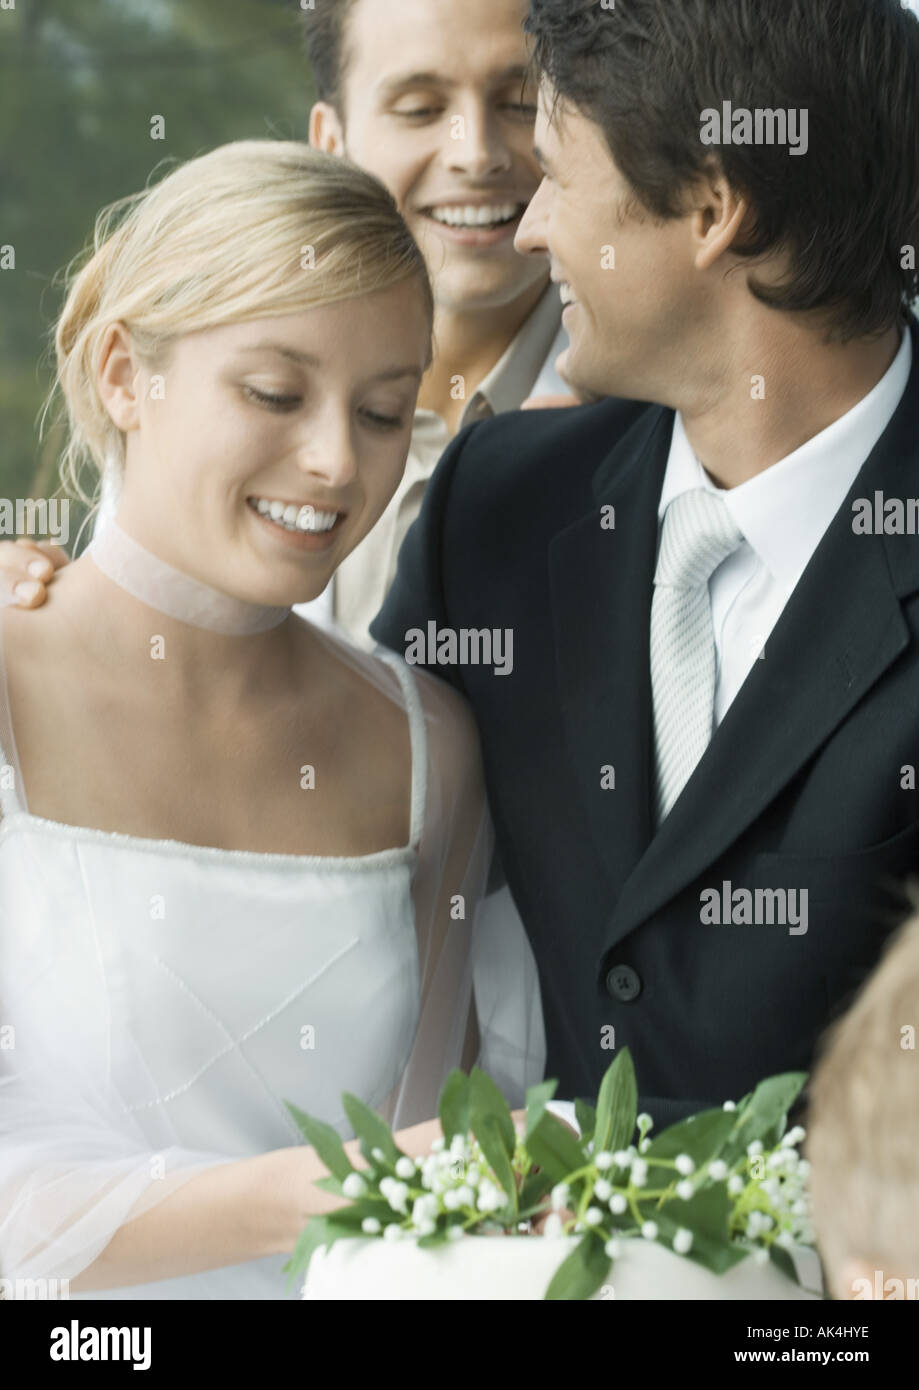 Wedding scene Stock Photo